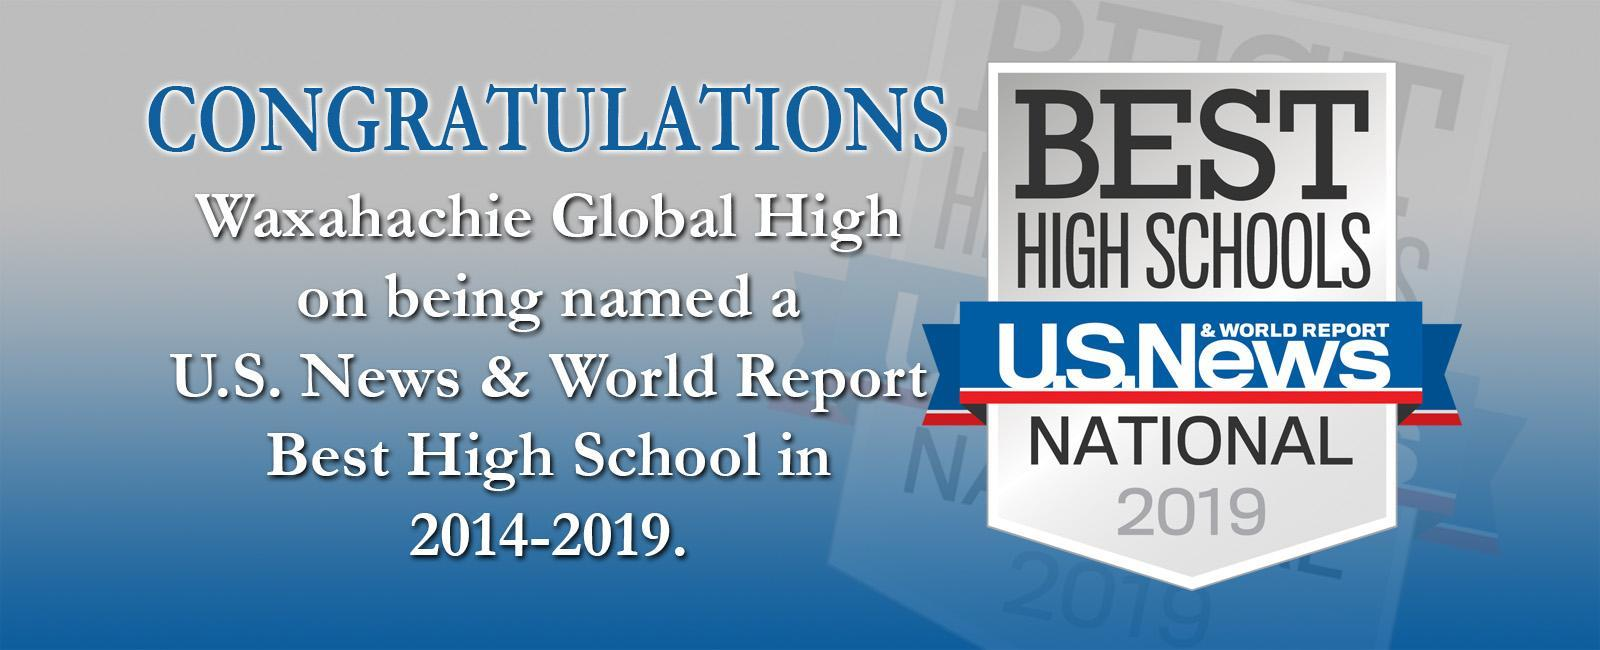 Global HS best high school in 2019